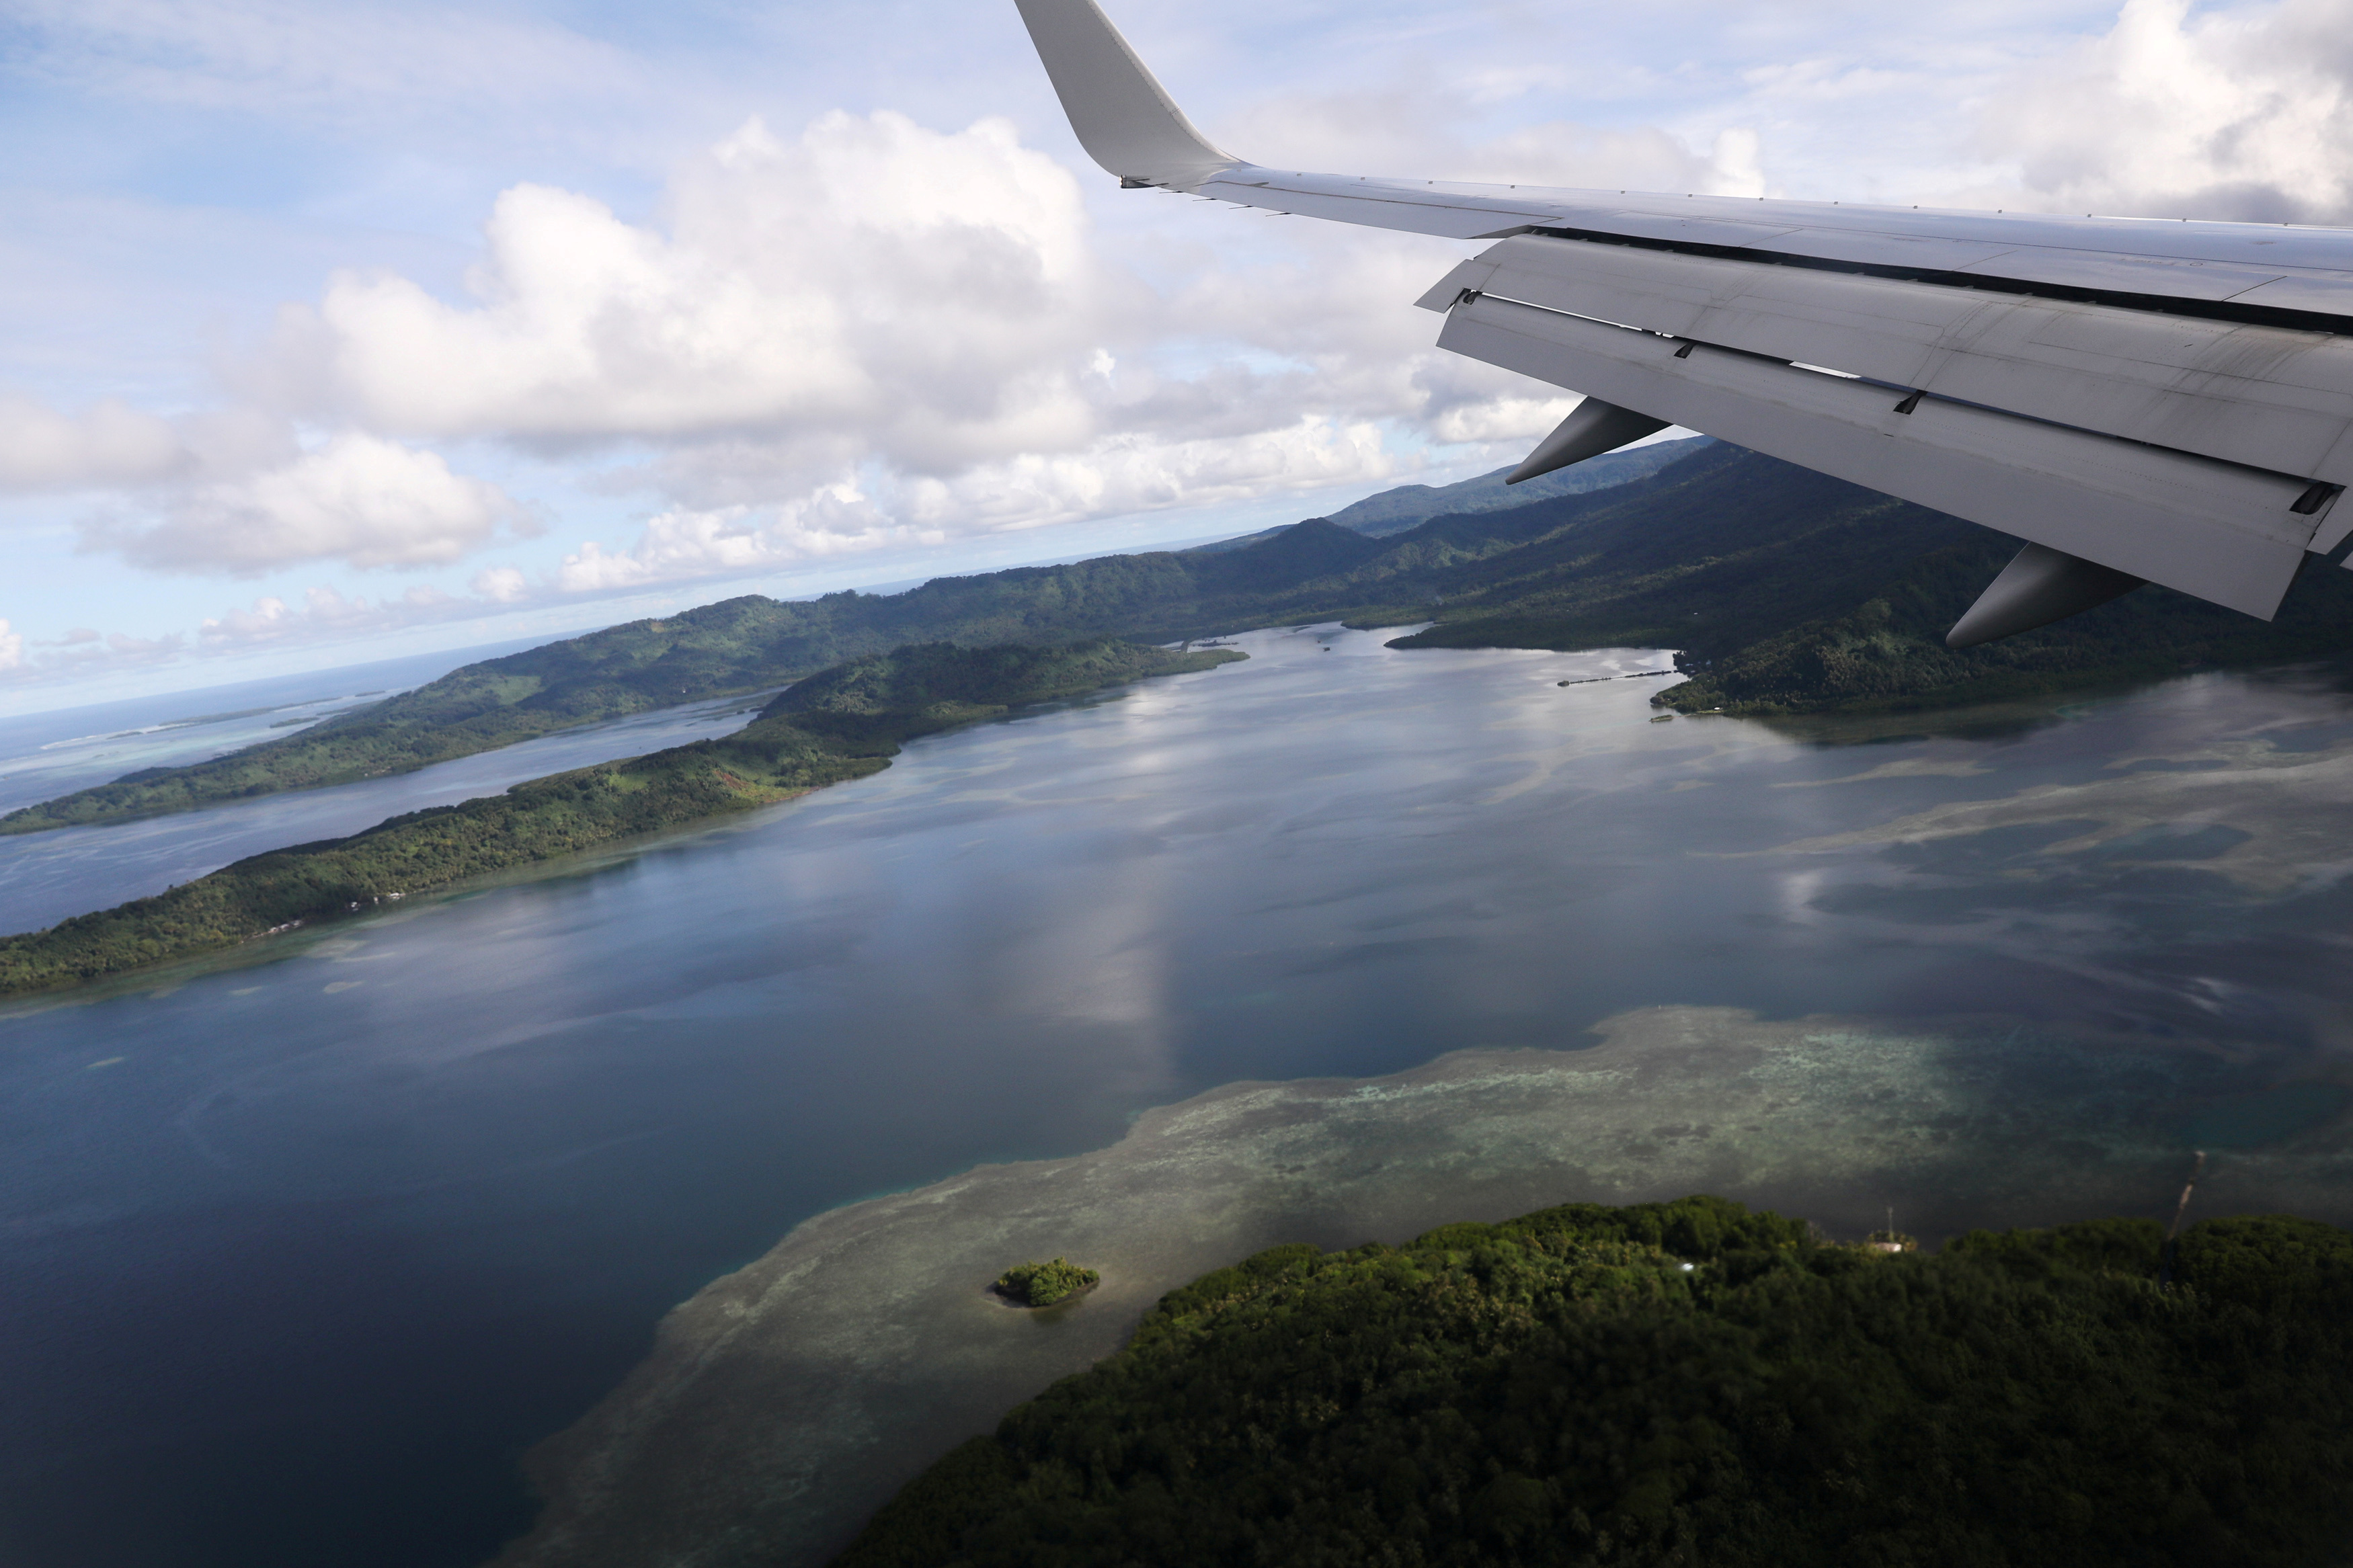 U.S. Secretary of State Mike Pompeo's plane makes a landing approach towards Pohnpei International Airport in Kolonia, Federated States of Micronesia, August 5, 2019. REUTERS/Jonathan Ernst/File Photo